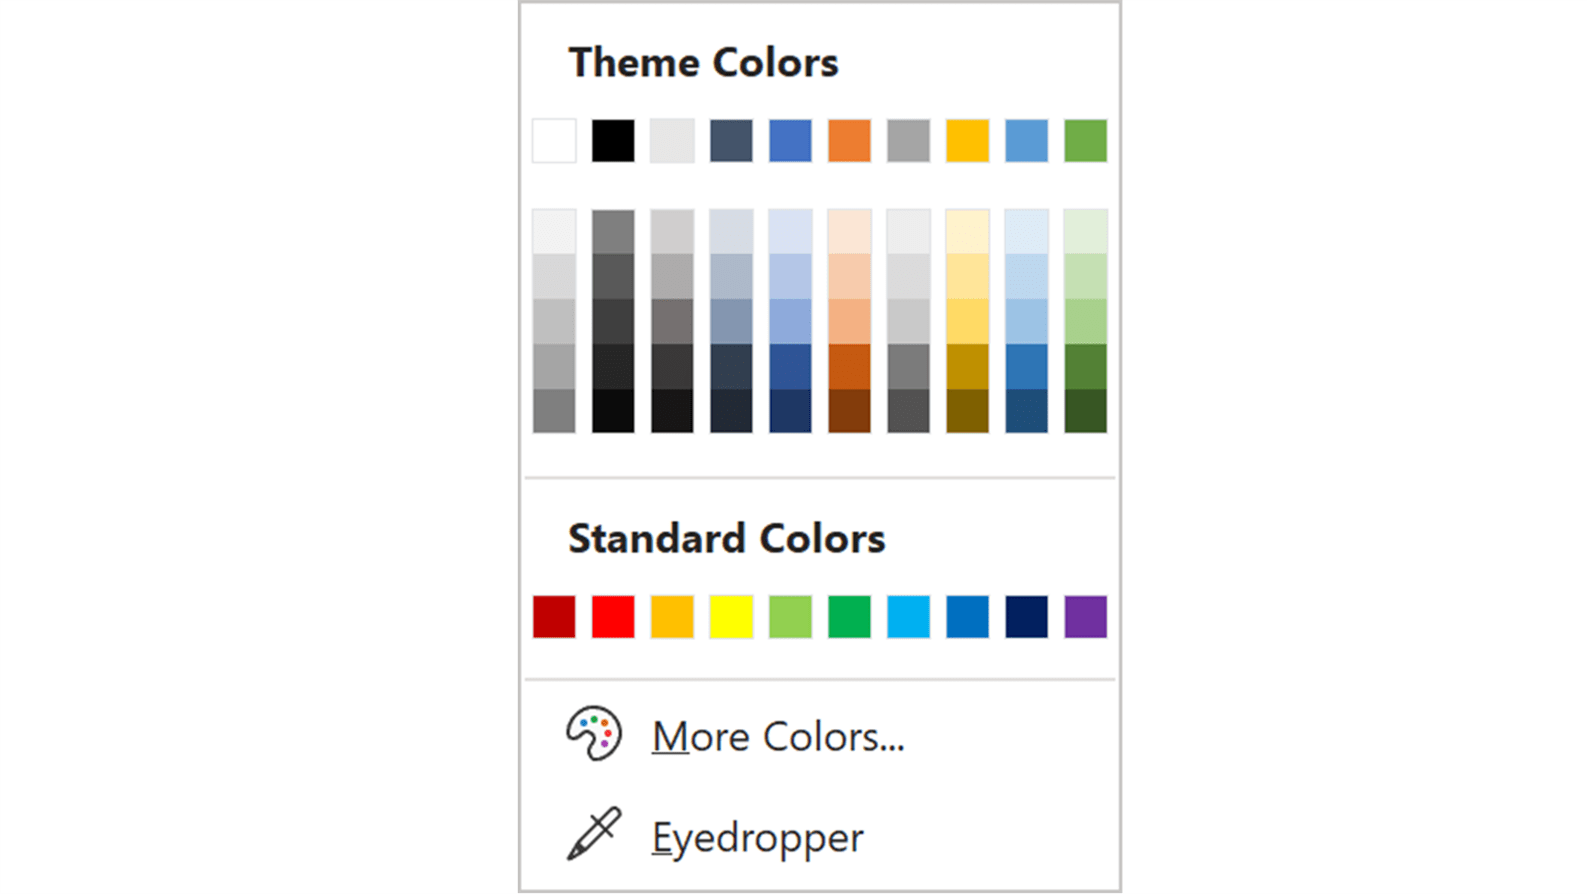 Screenshot of the Theme Colors panel in PowerPoint